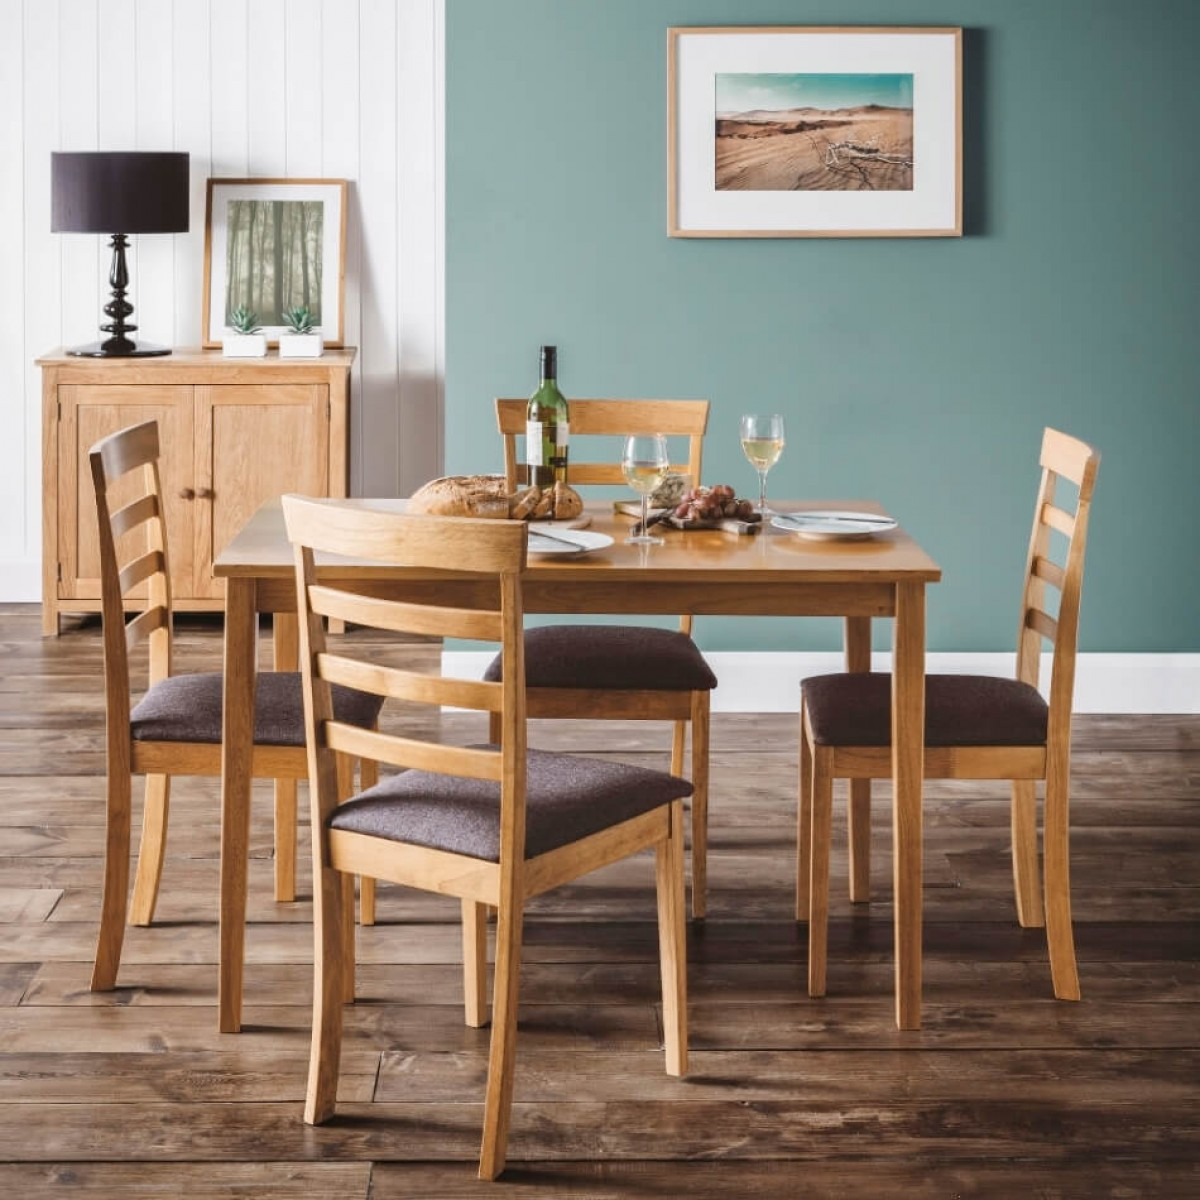 Cleo Möbel Dining Set Cleo Dining Table And 4 Dining Chairs In Oak Cle008